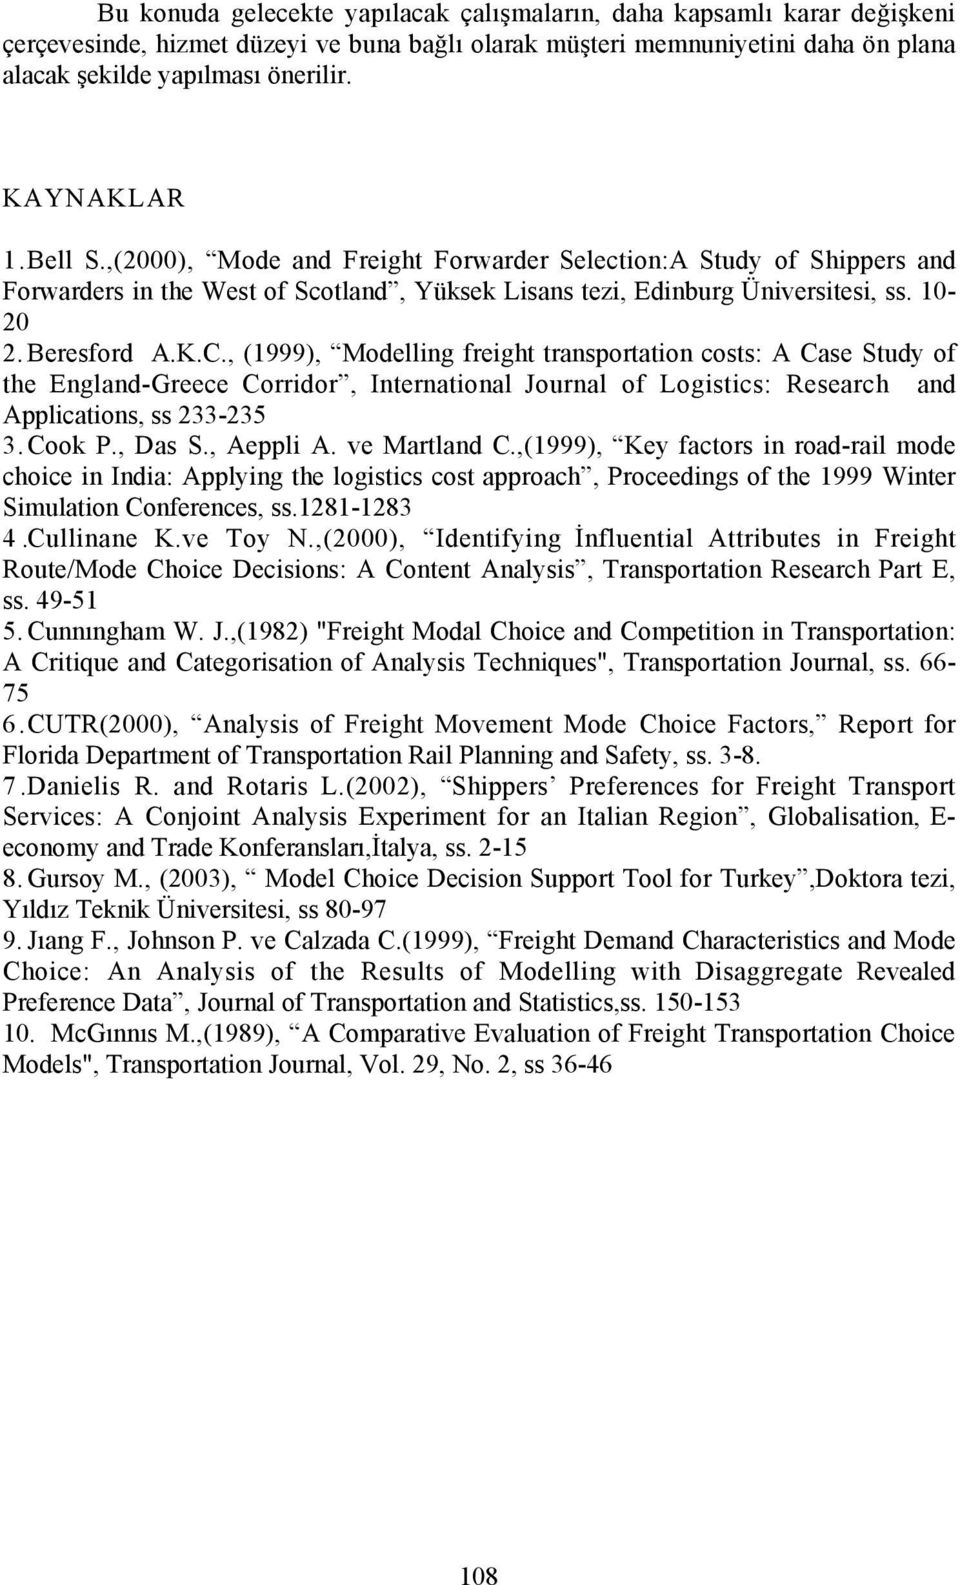 , (1999), Modelling freight transportation costs: A Case Study of the England-Greece Corridor, International Journal of Logistics: Research and Applications, ss 233-235 3. Cook P., Das S., Aeppli A.